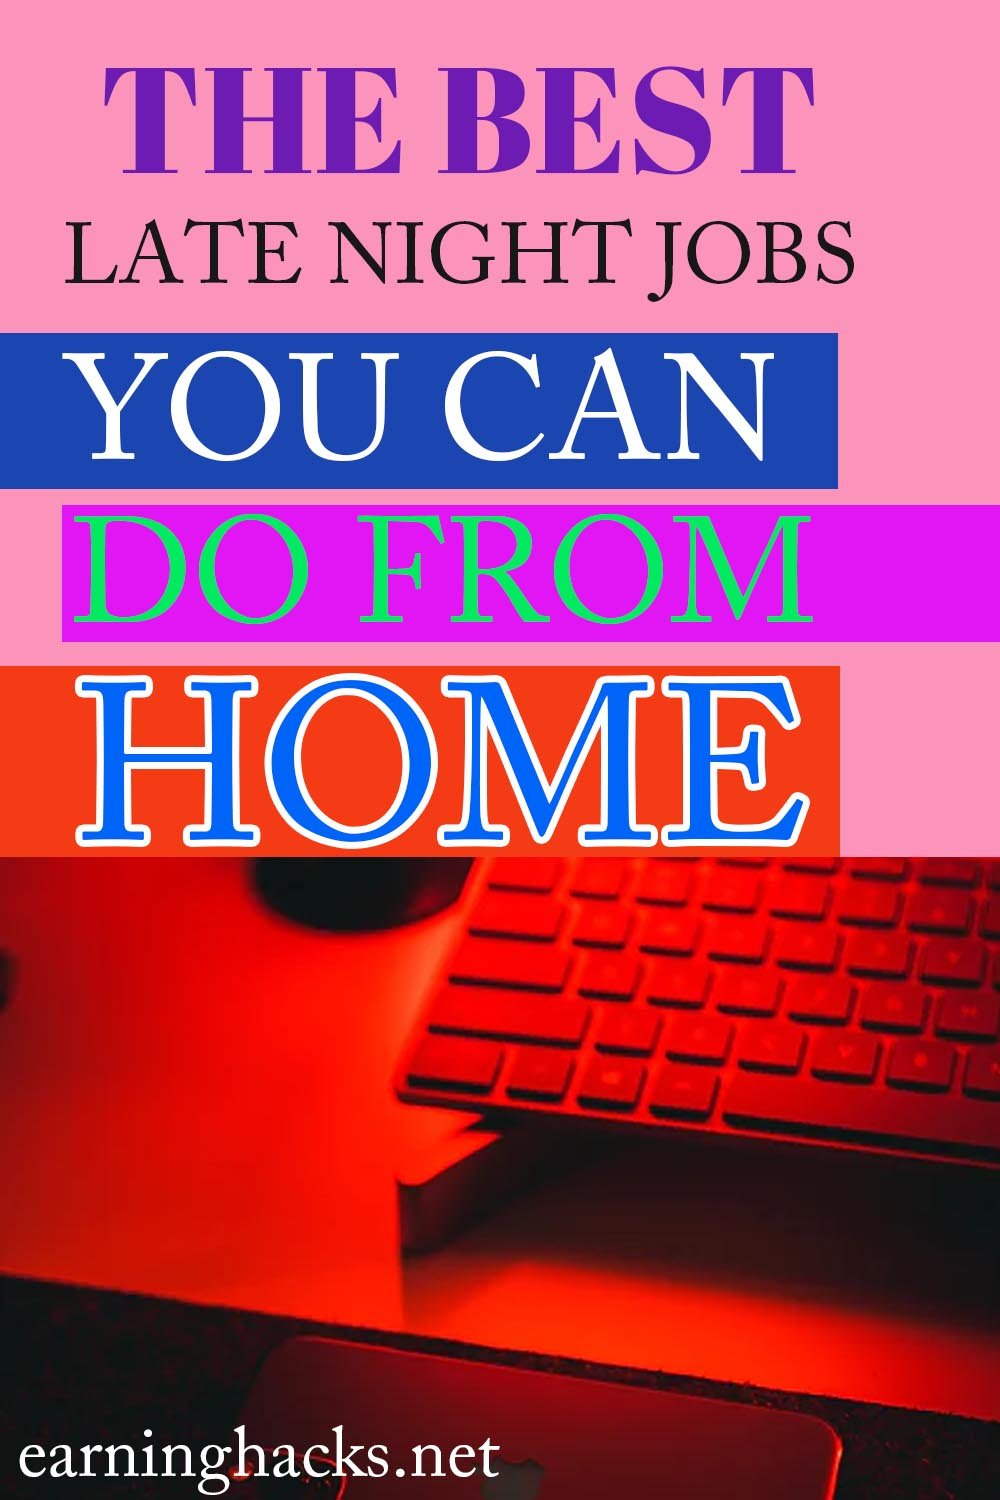 The Best Late Night Jobs You Can Do From Home